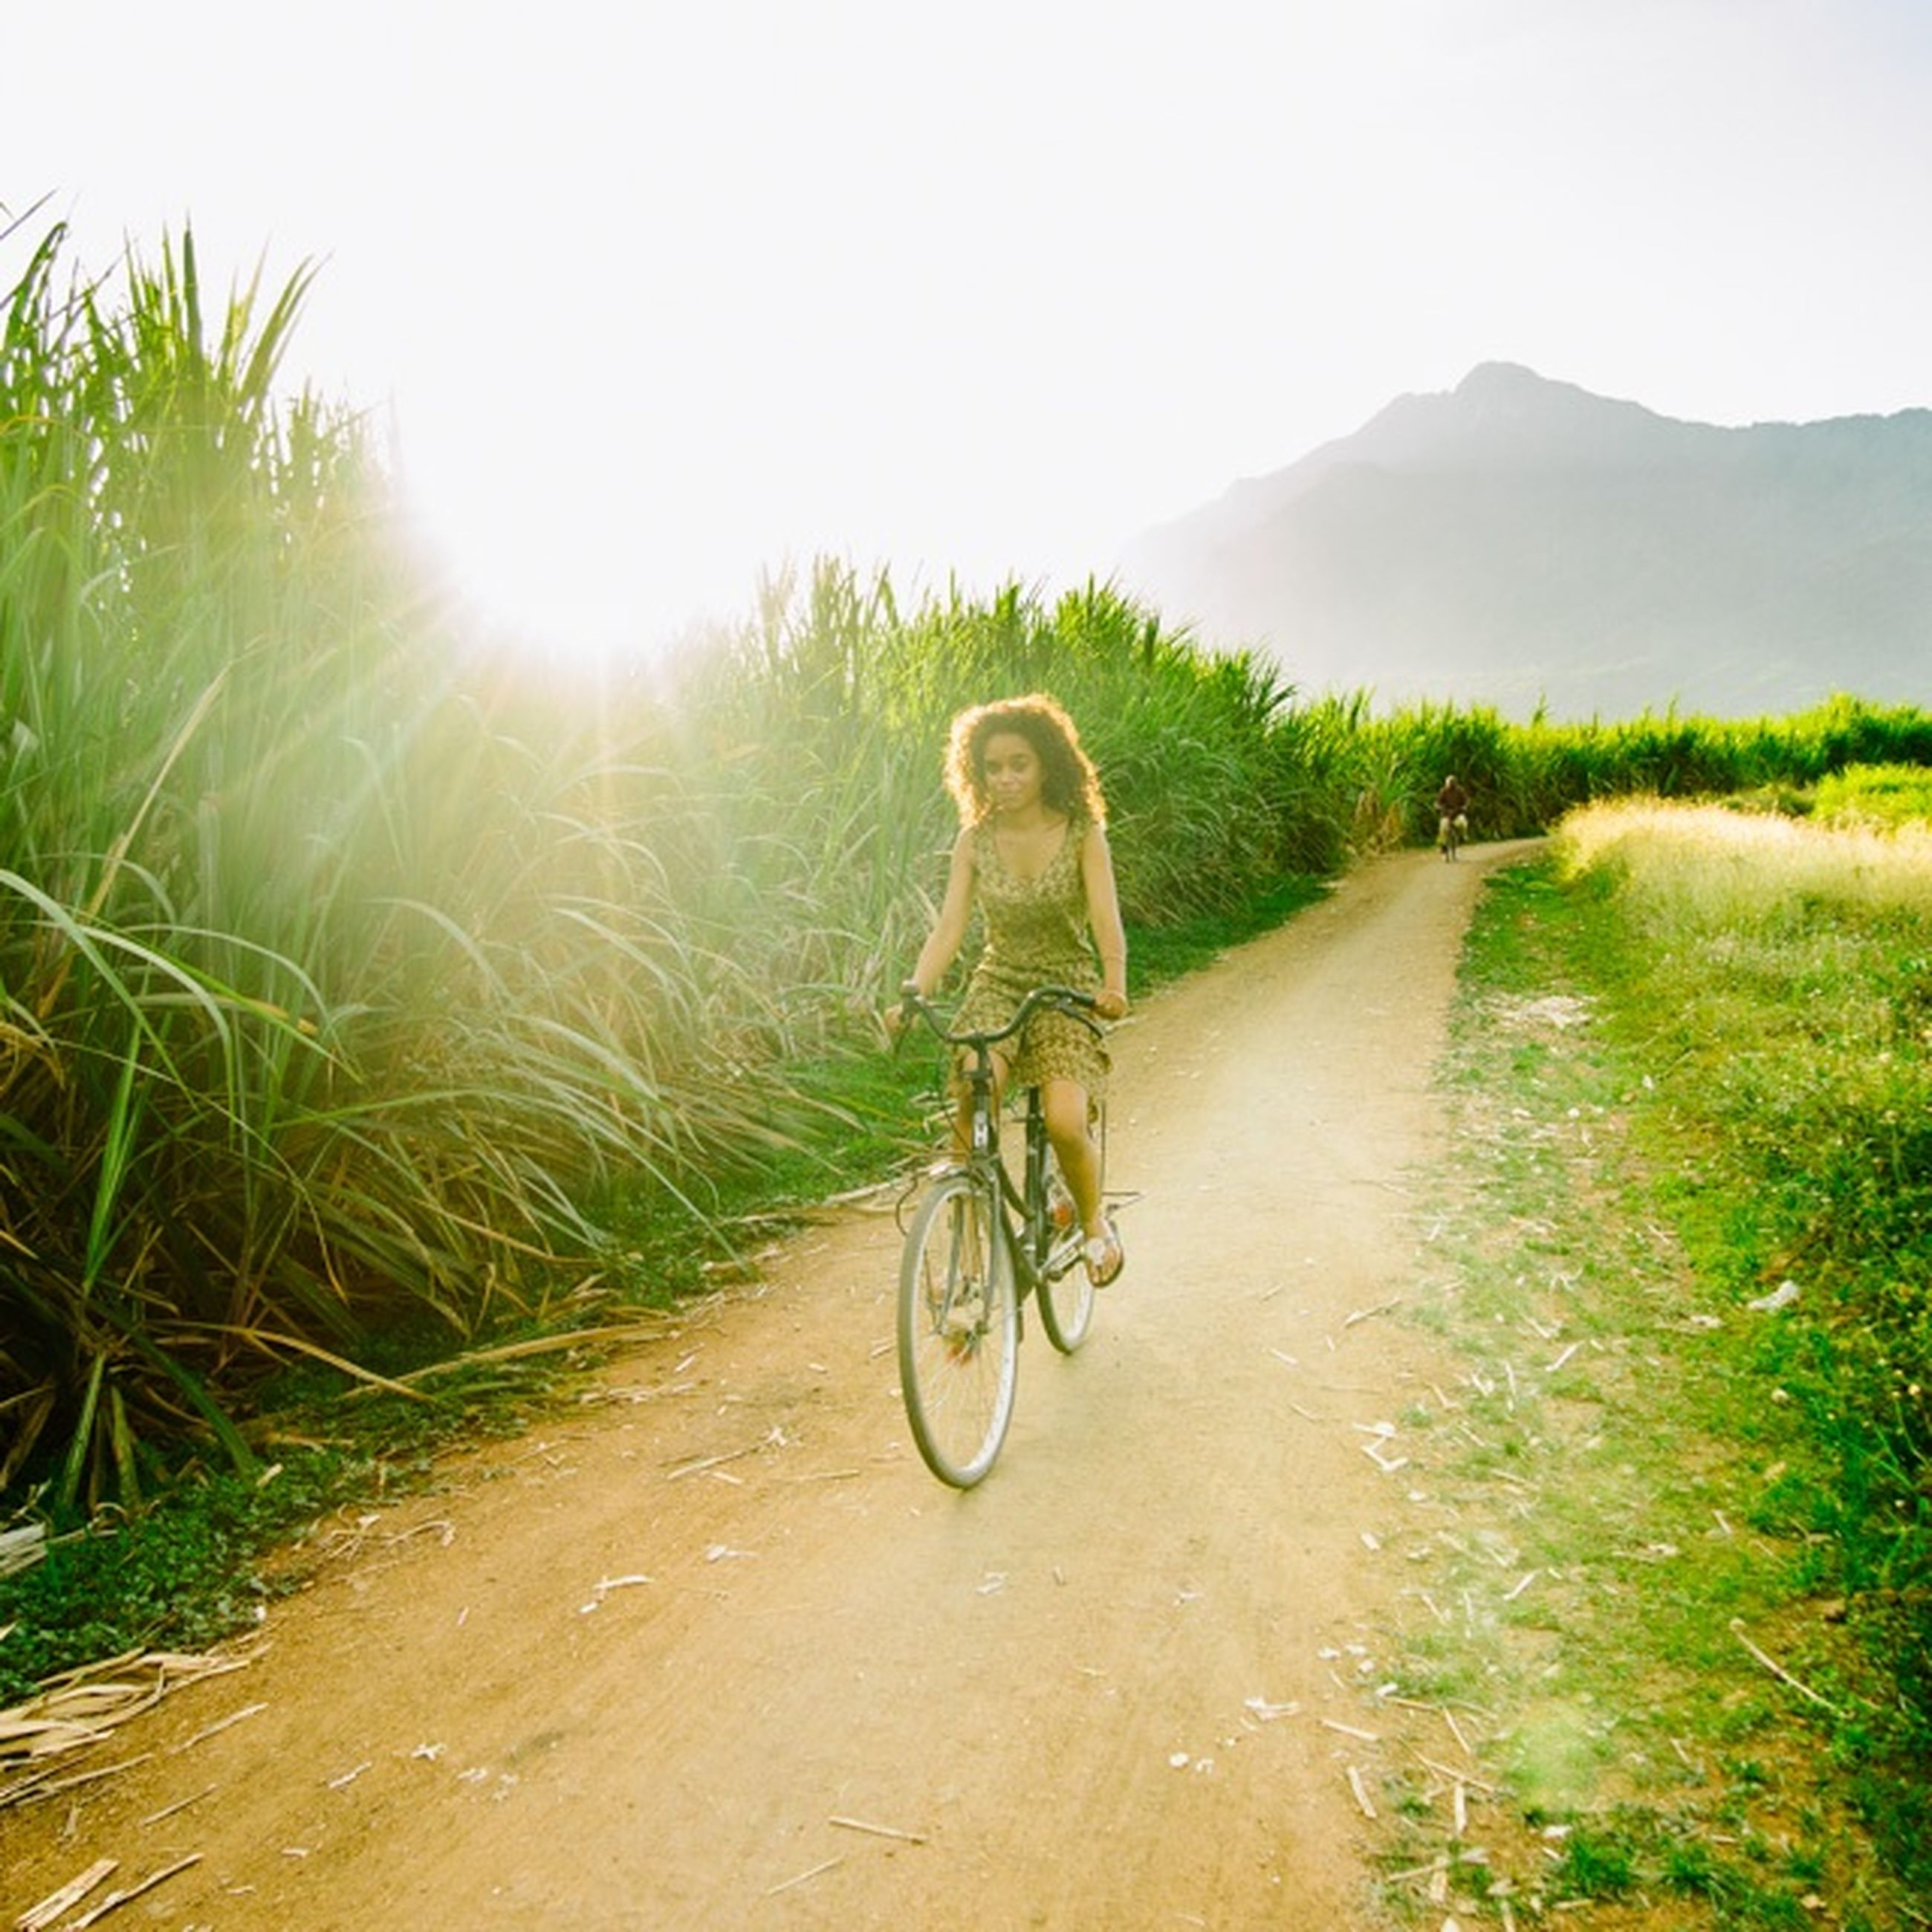 bicycle, full length, transportation, riding, lifestyles, land vehicle, leisure activity, mode of transport, cycling, road, dirt road, men, rear view, the way forward, sunlight, casual clothing, grass, clear sky